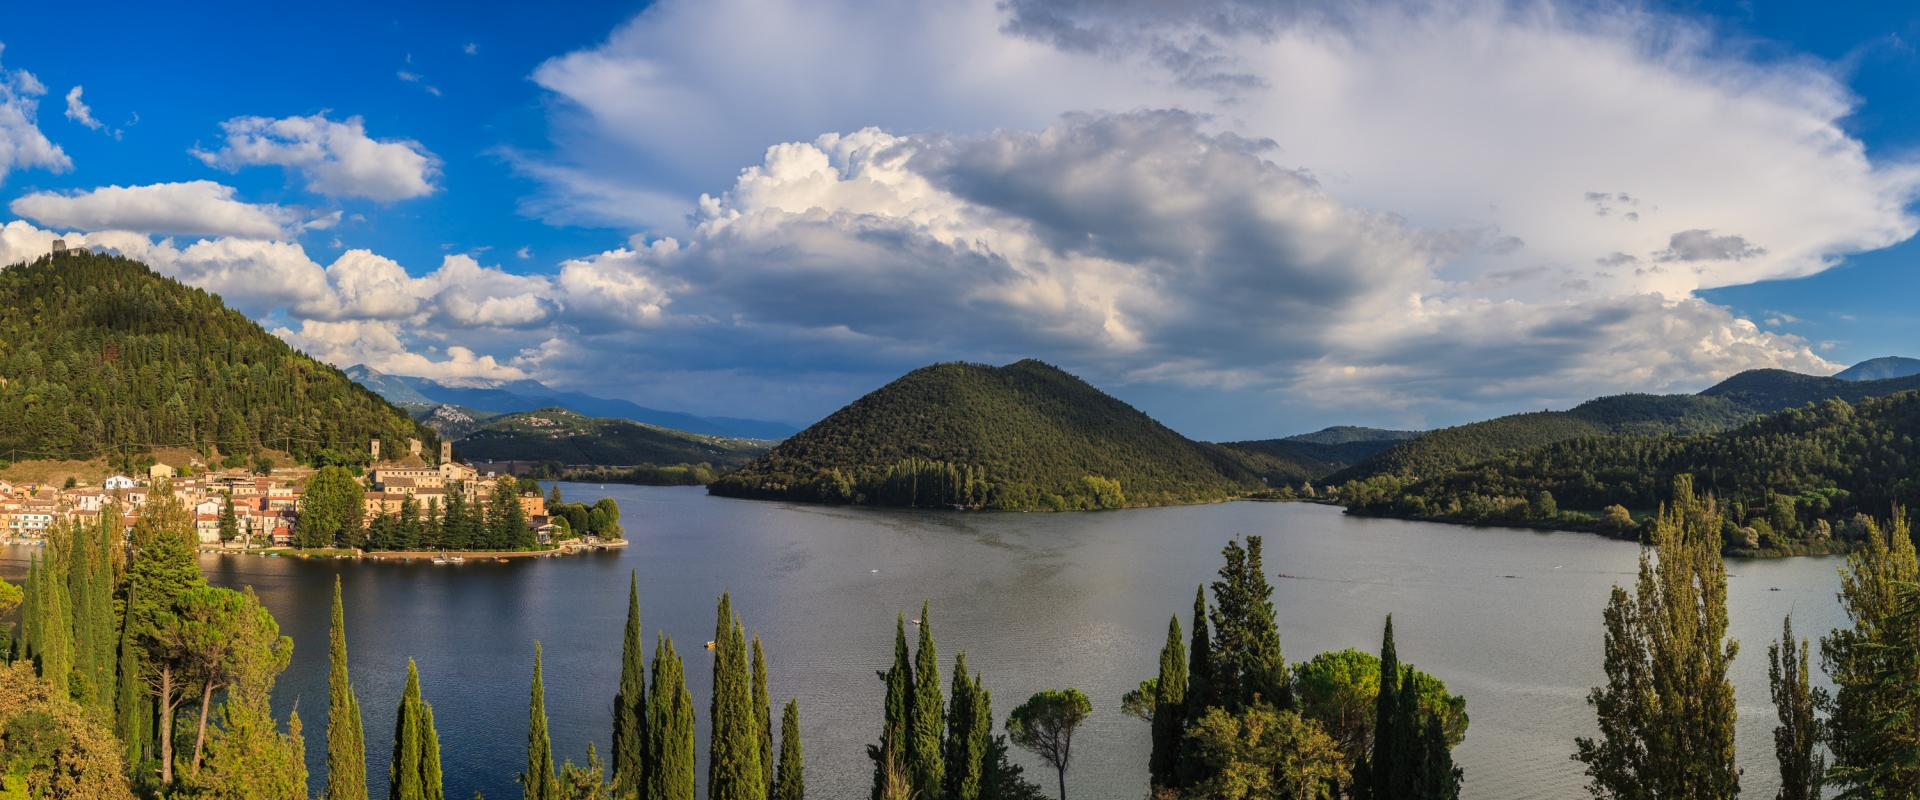 Hiking experience in Piediluco Lake